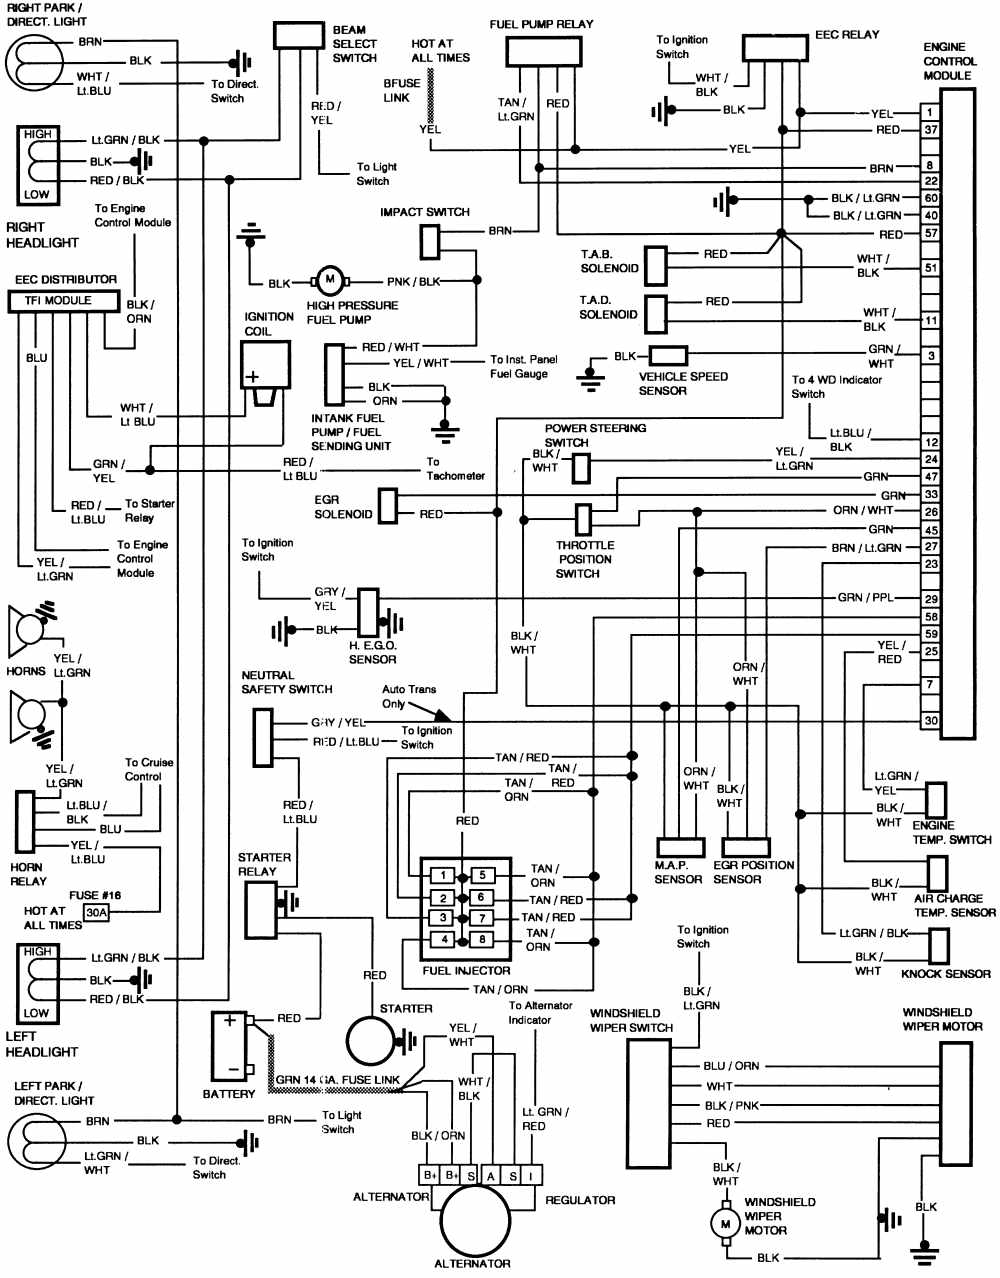 Ford F 250 1986 Engine Control Moduleon 1987 Ford F 150 Fuel System Diagram